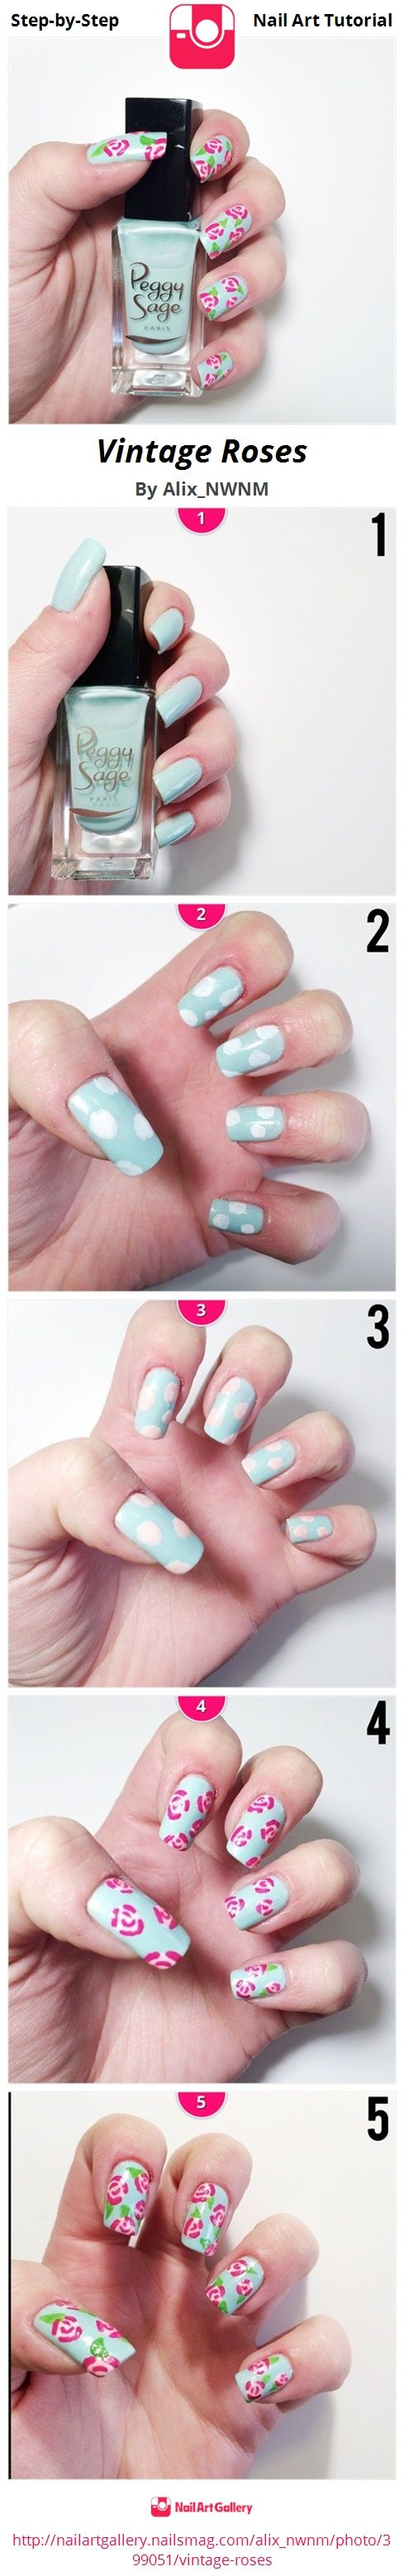 VINTAGE ROSES - Nail Art Gallery Step-by-Step Tutorial Photos